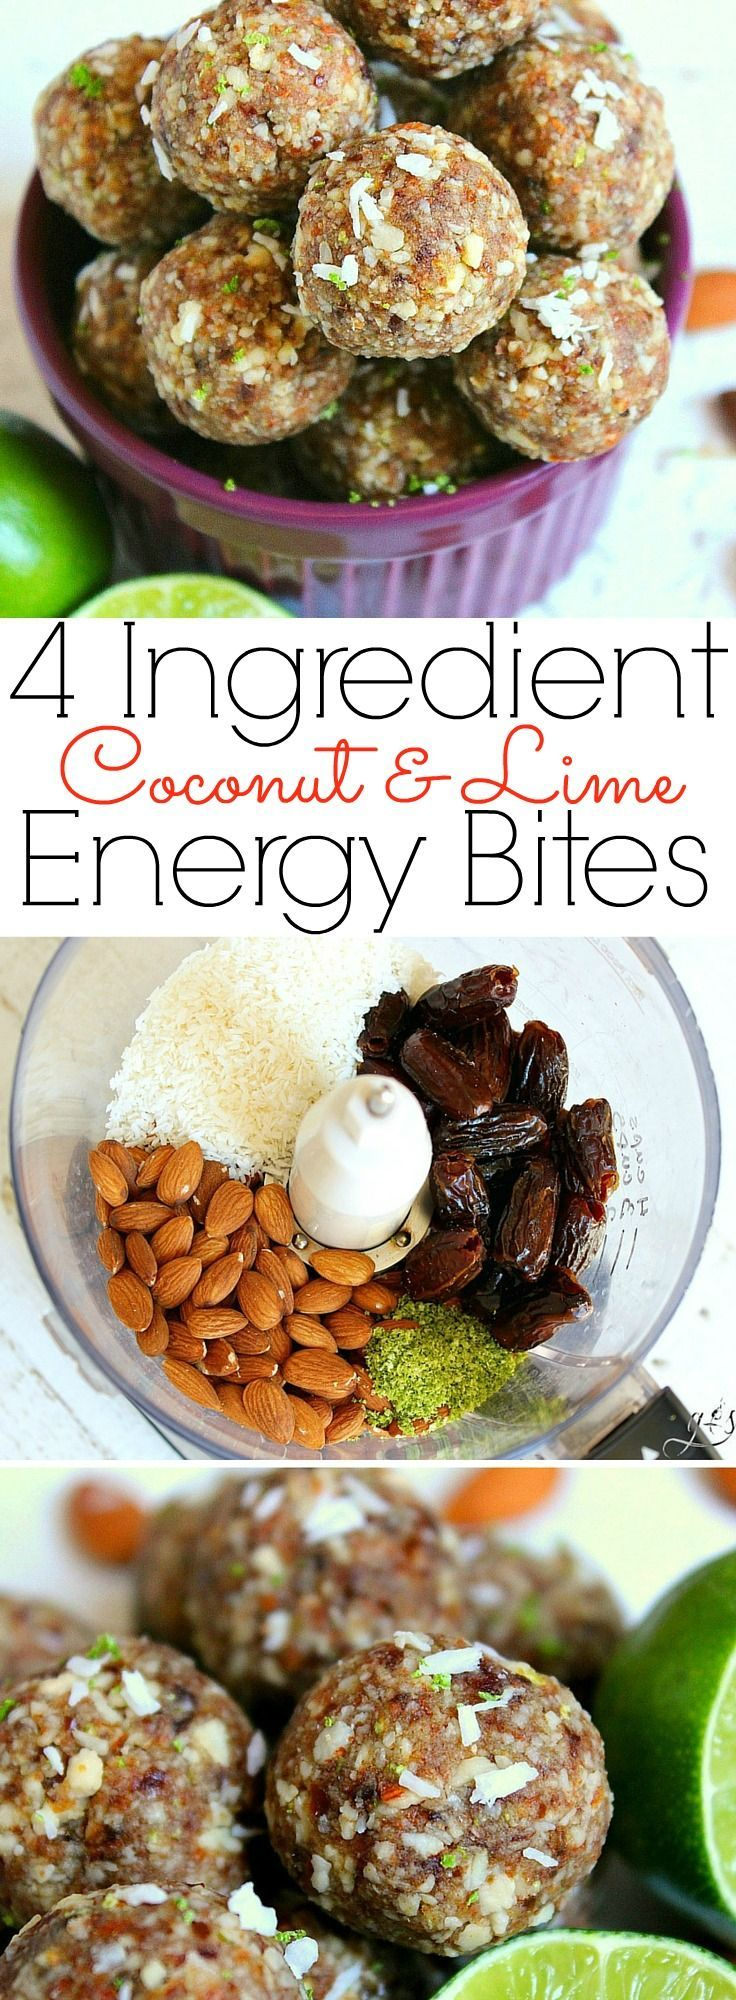 4 Ingredient Coconut Lime Energy Bites | Take on your next camping trip, hike, or pack for your kids school lunch!